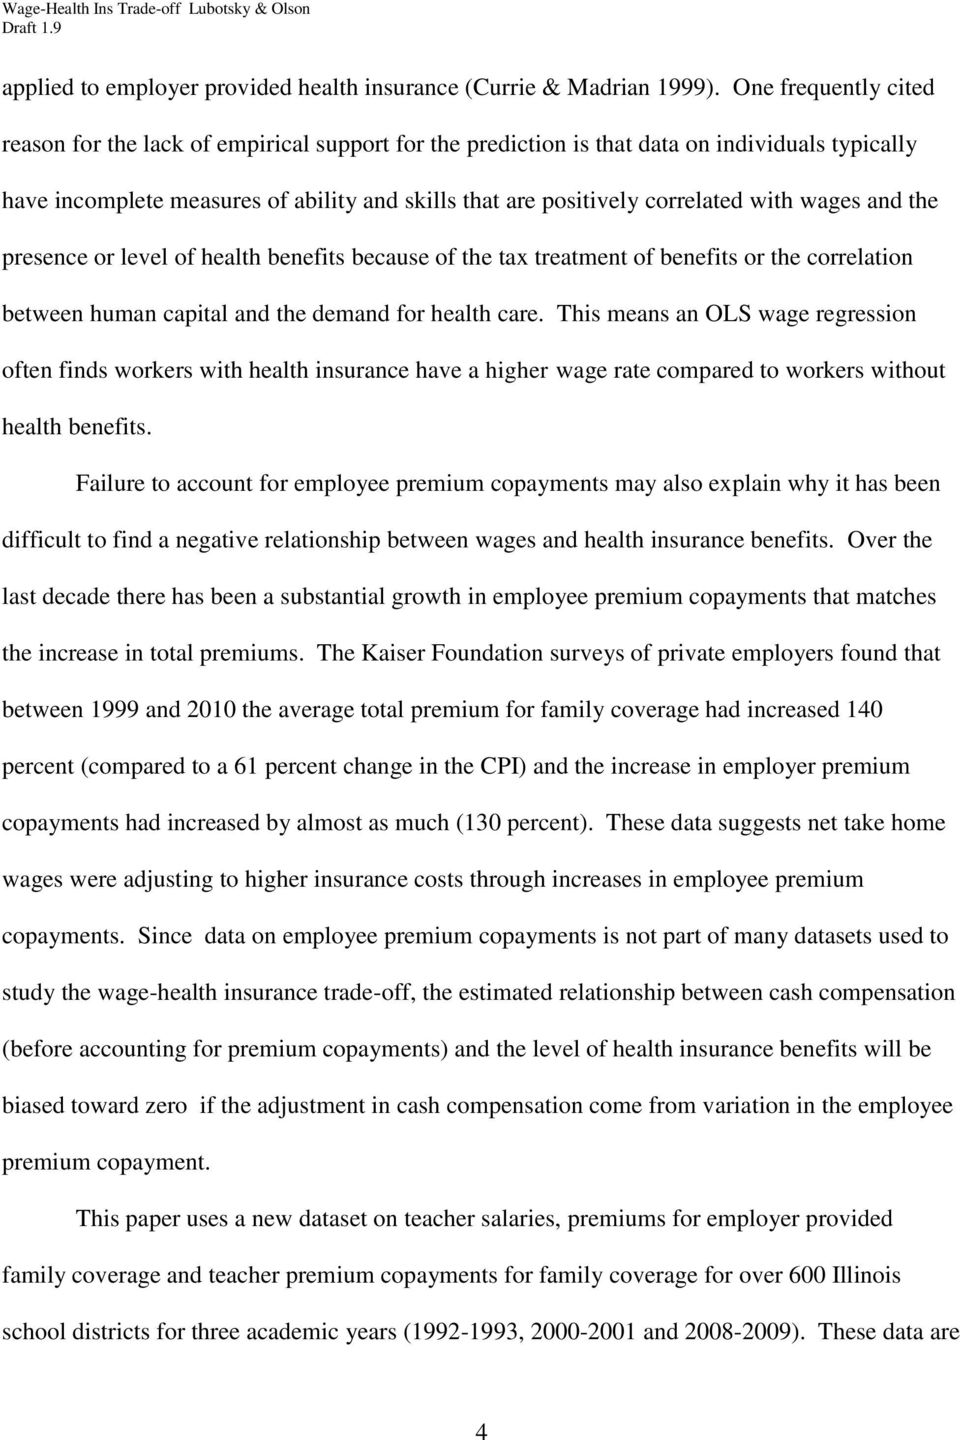 with wages and the presence or level of health benefits because of the tax treatment of benefits or the correlation between human capital and the demand for health care.